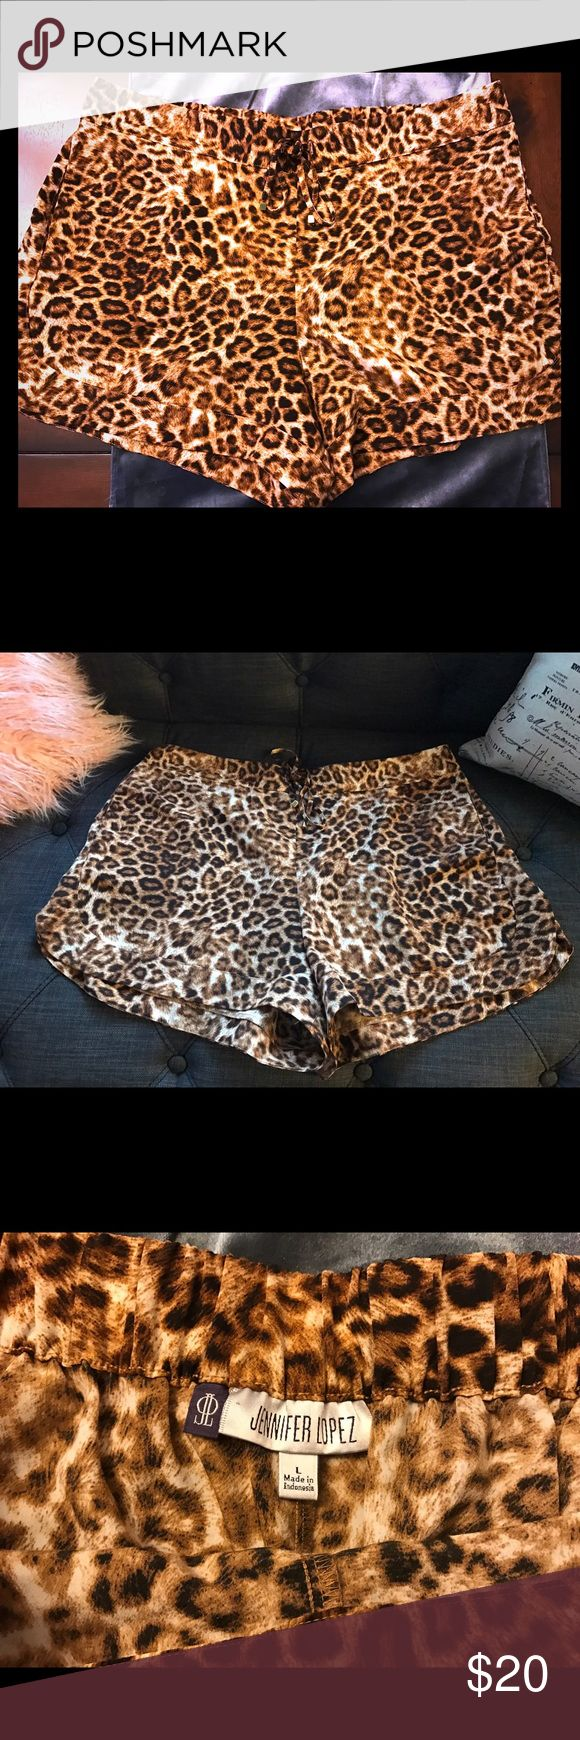 Silky leopard shorts Worn once super comfortable leopard print shorts. Tie front with stretch waist band. Soooo comfortable !!! Jennifer Lopez Shorts